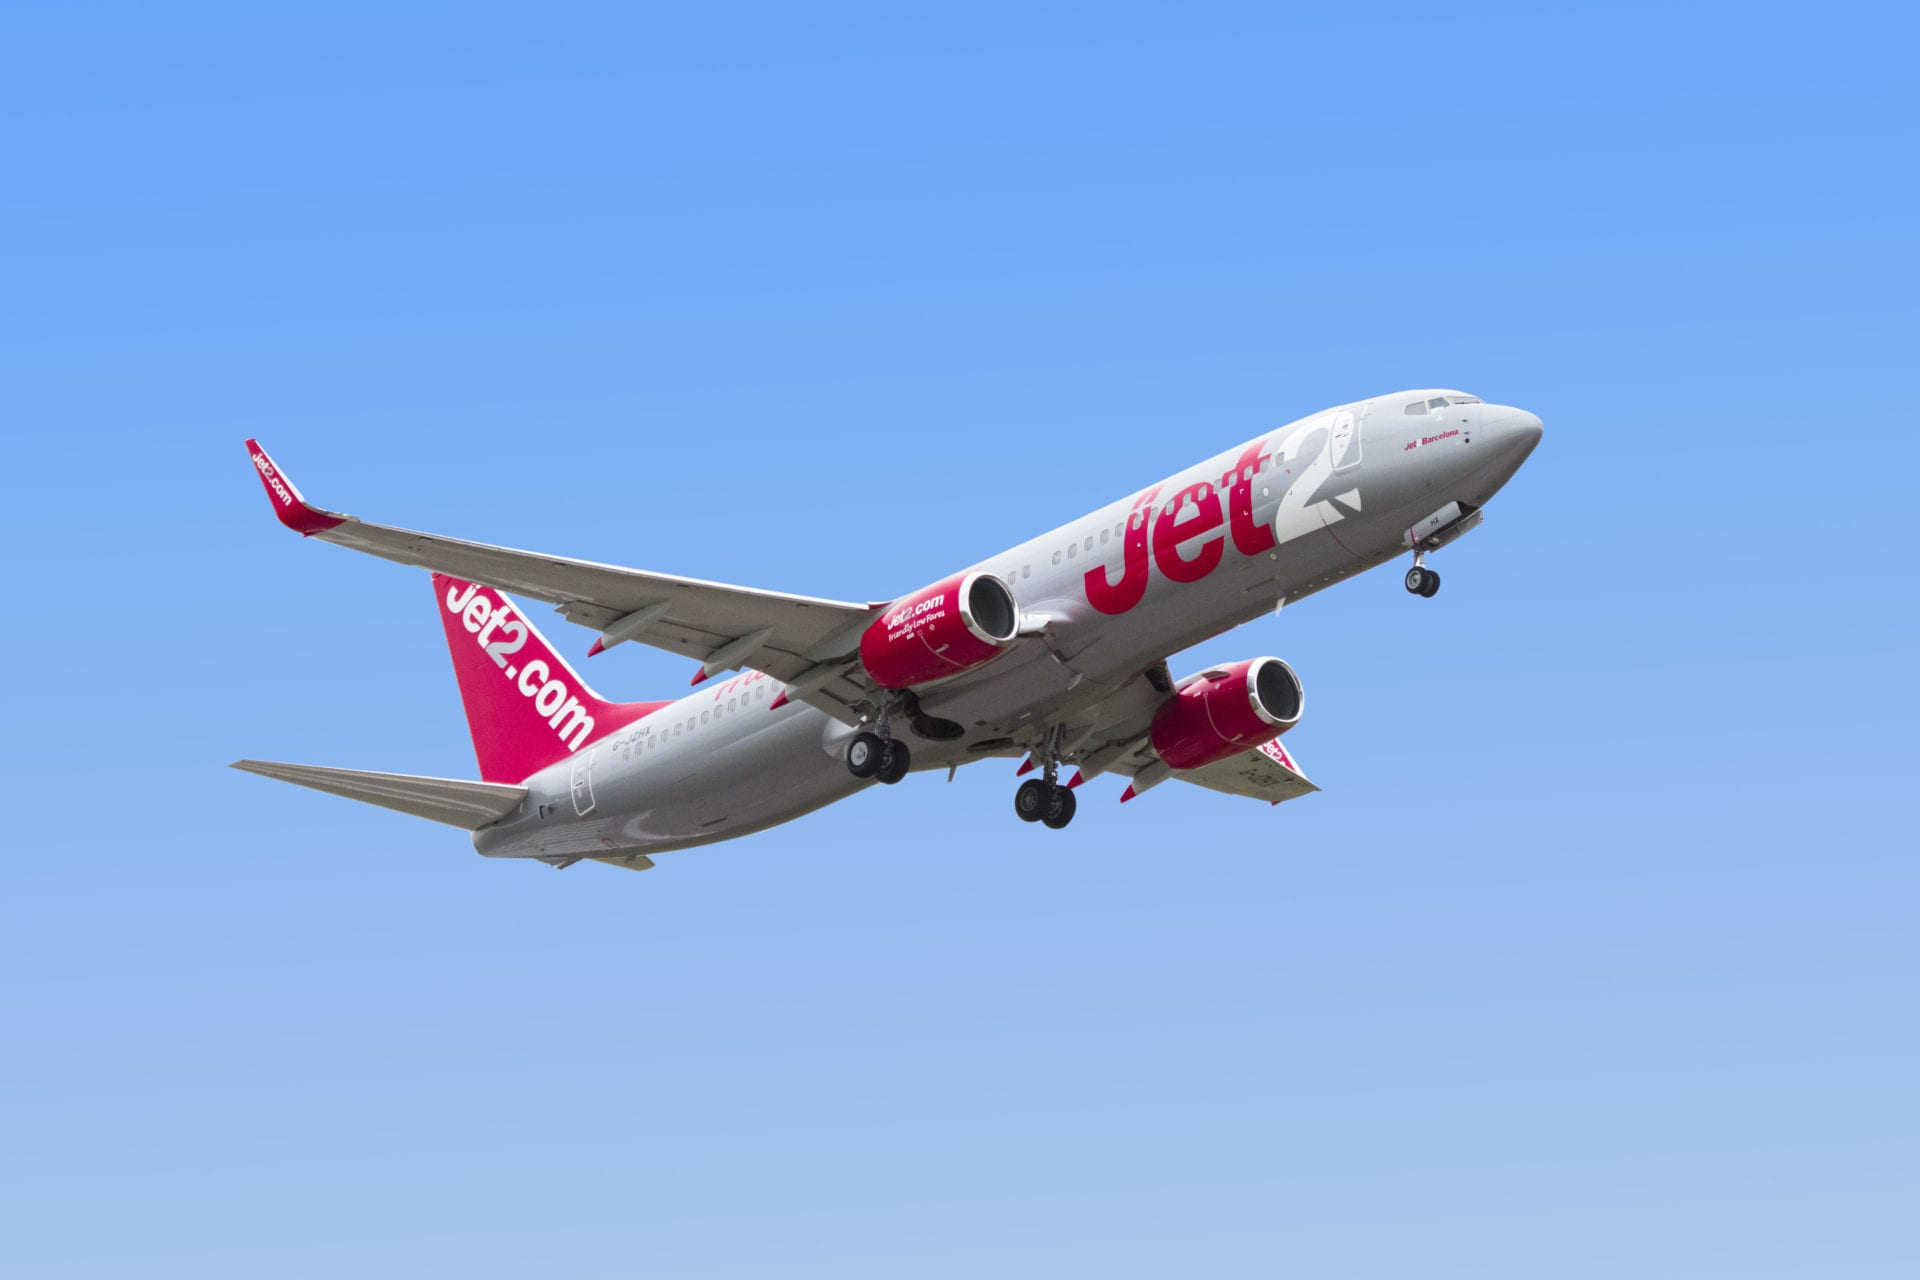 Jet2 adds capacity to the Canary Islands in response to demand